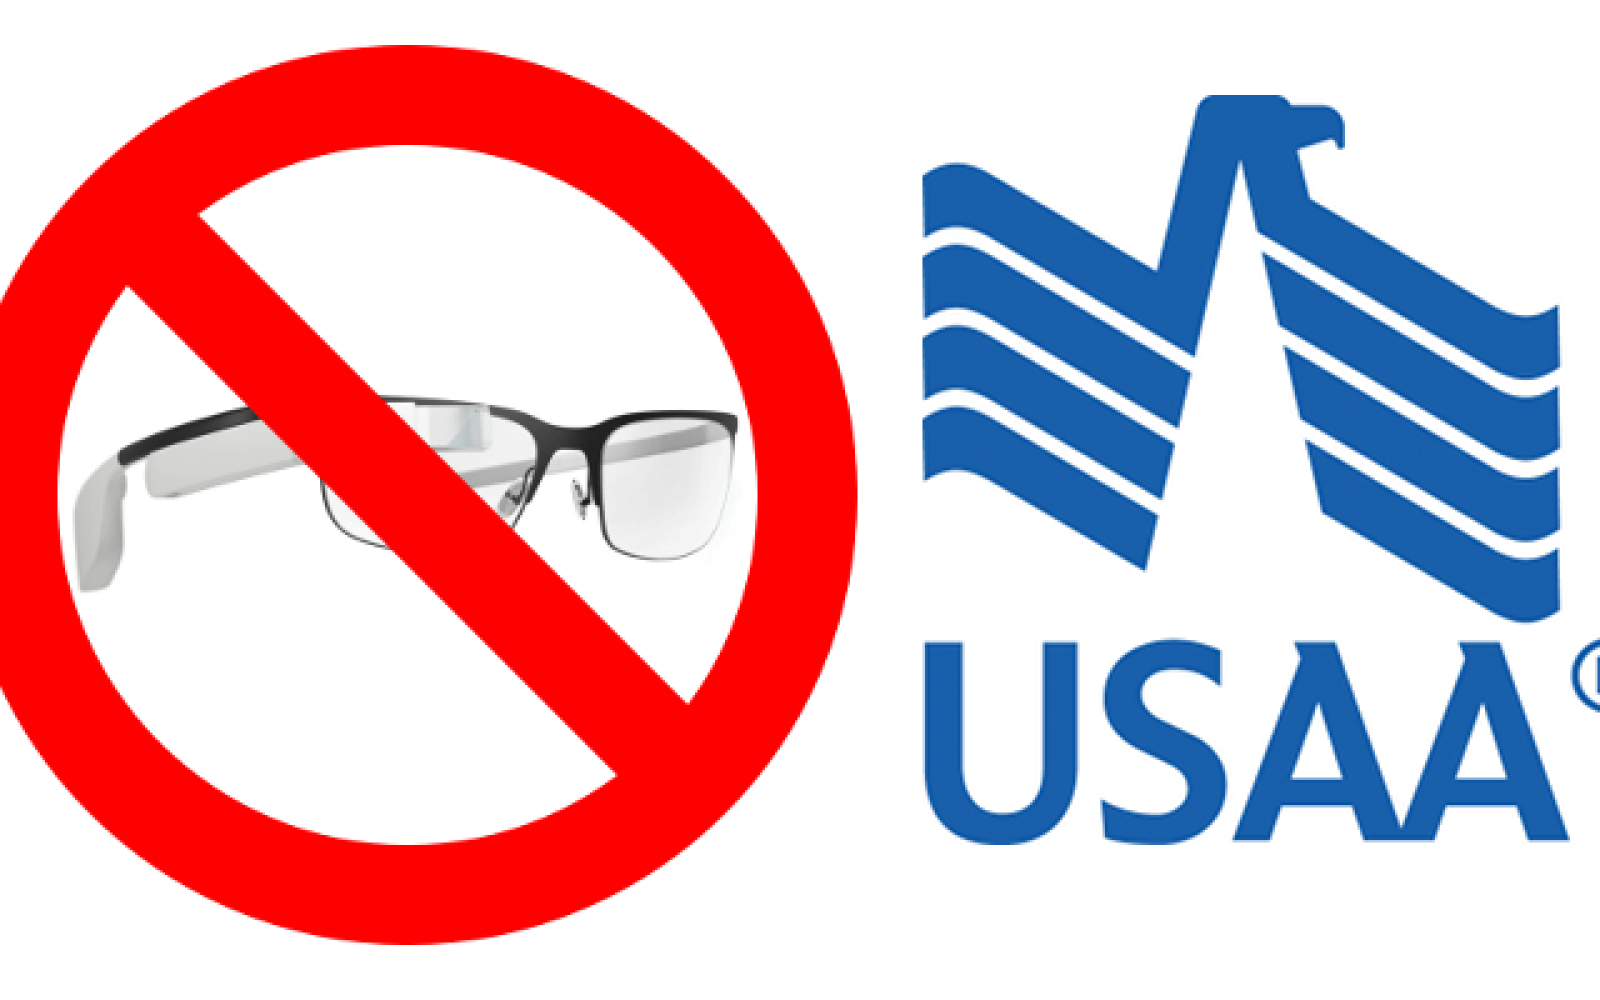 Employees of USAA are now banned from wearing Google Glass, other wearables